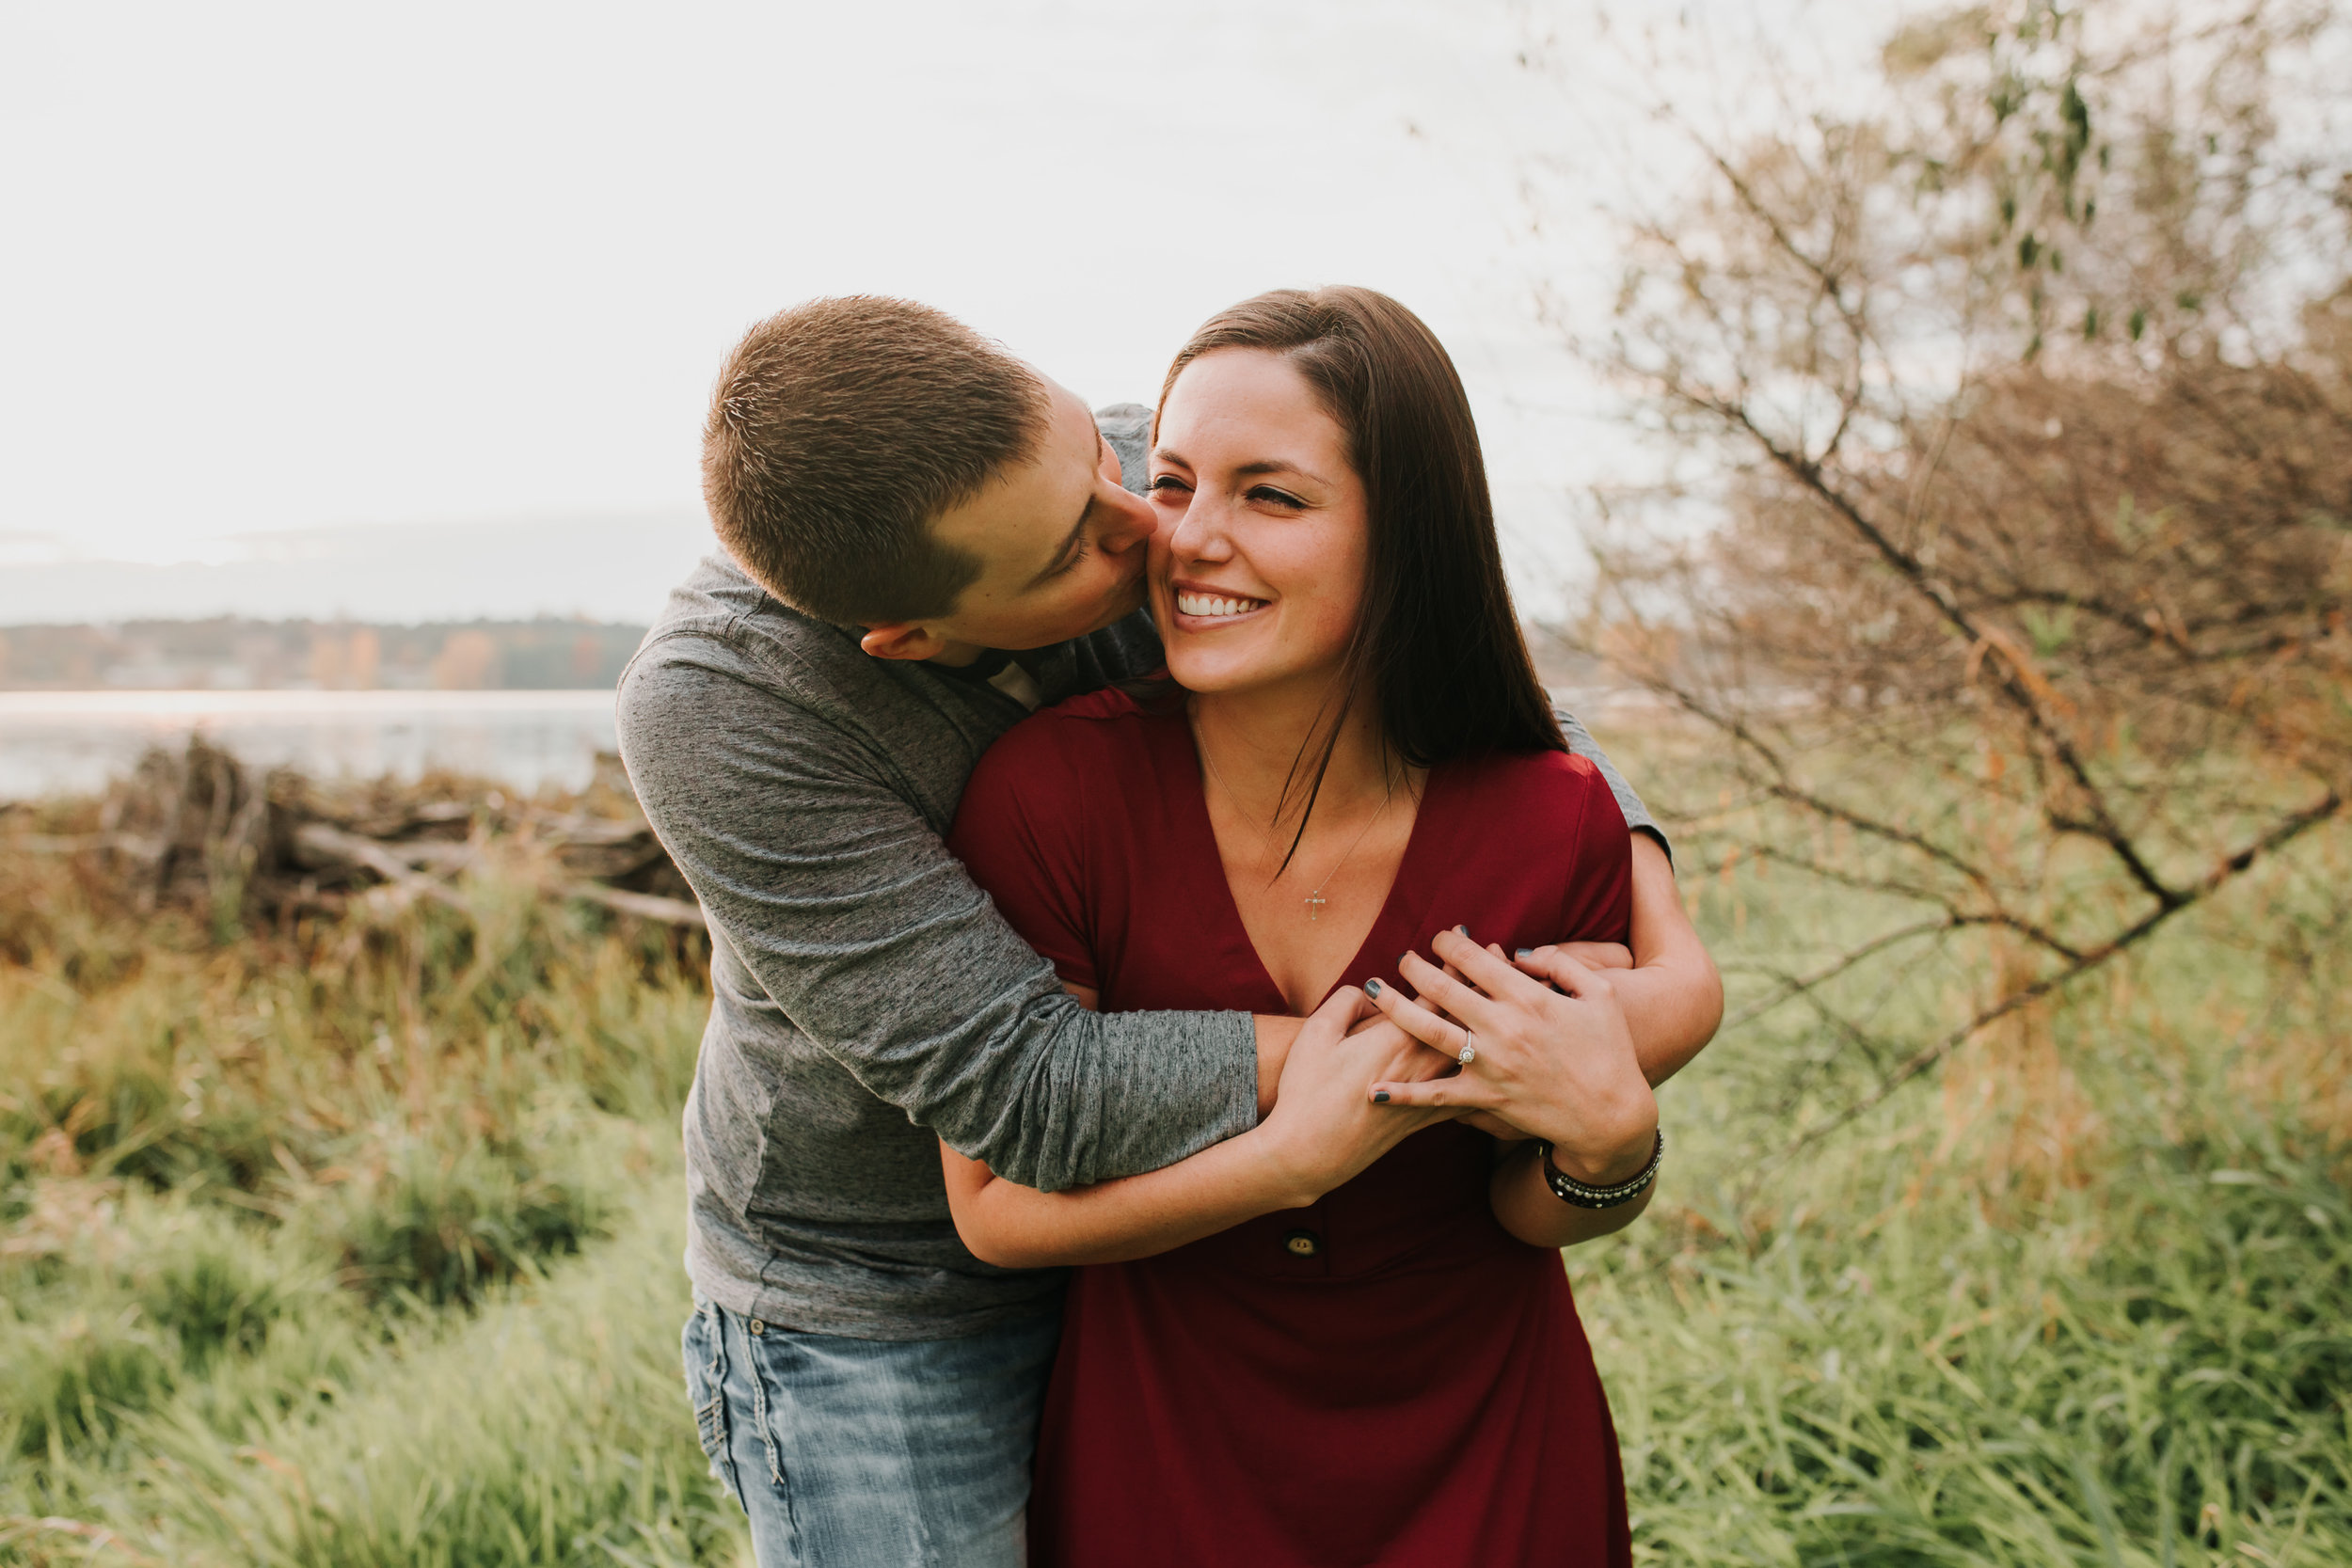 Hannah & Brett - Engaged - Nathaniel Jensen Photography - Omaha Nebraska Wedding Photograper - Omaha Nebraska Engagement Session - Chalco Hills Engagement Session-163.jpg